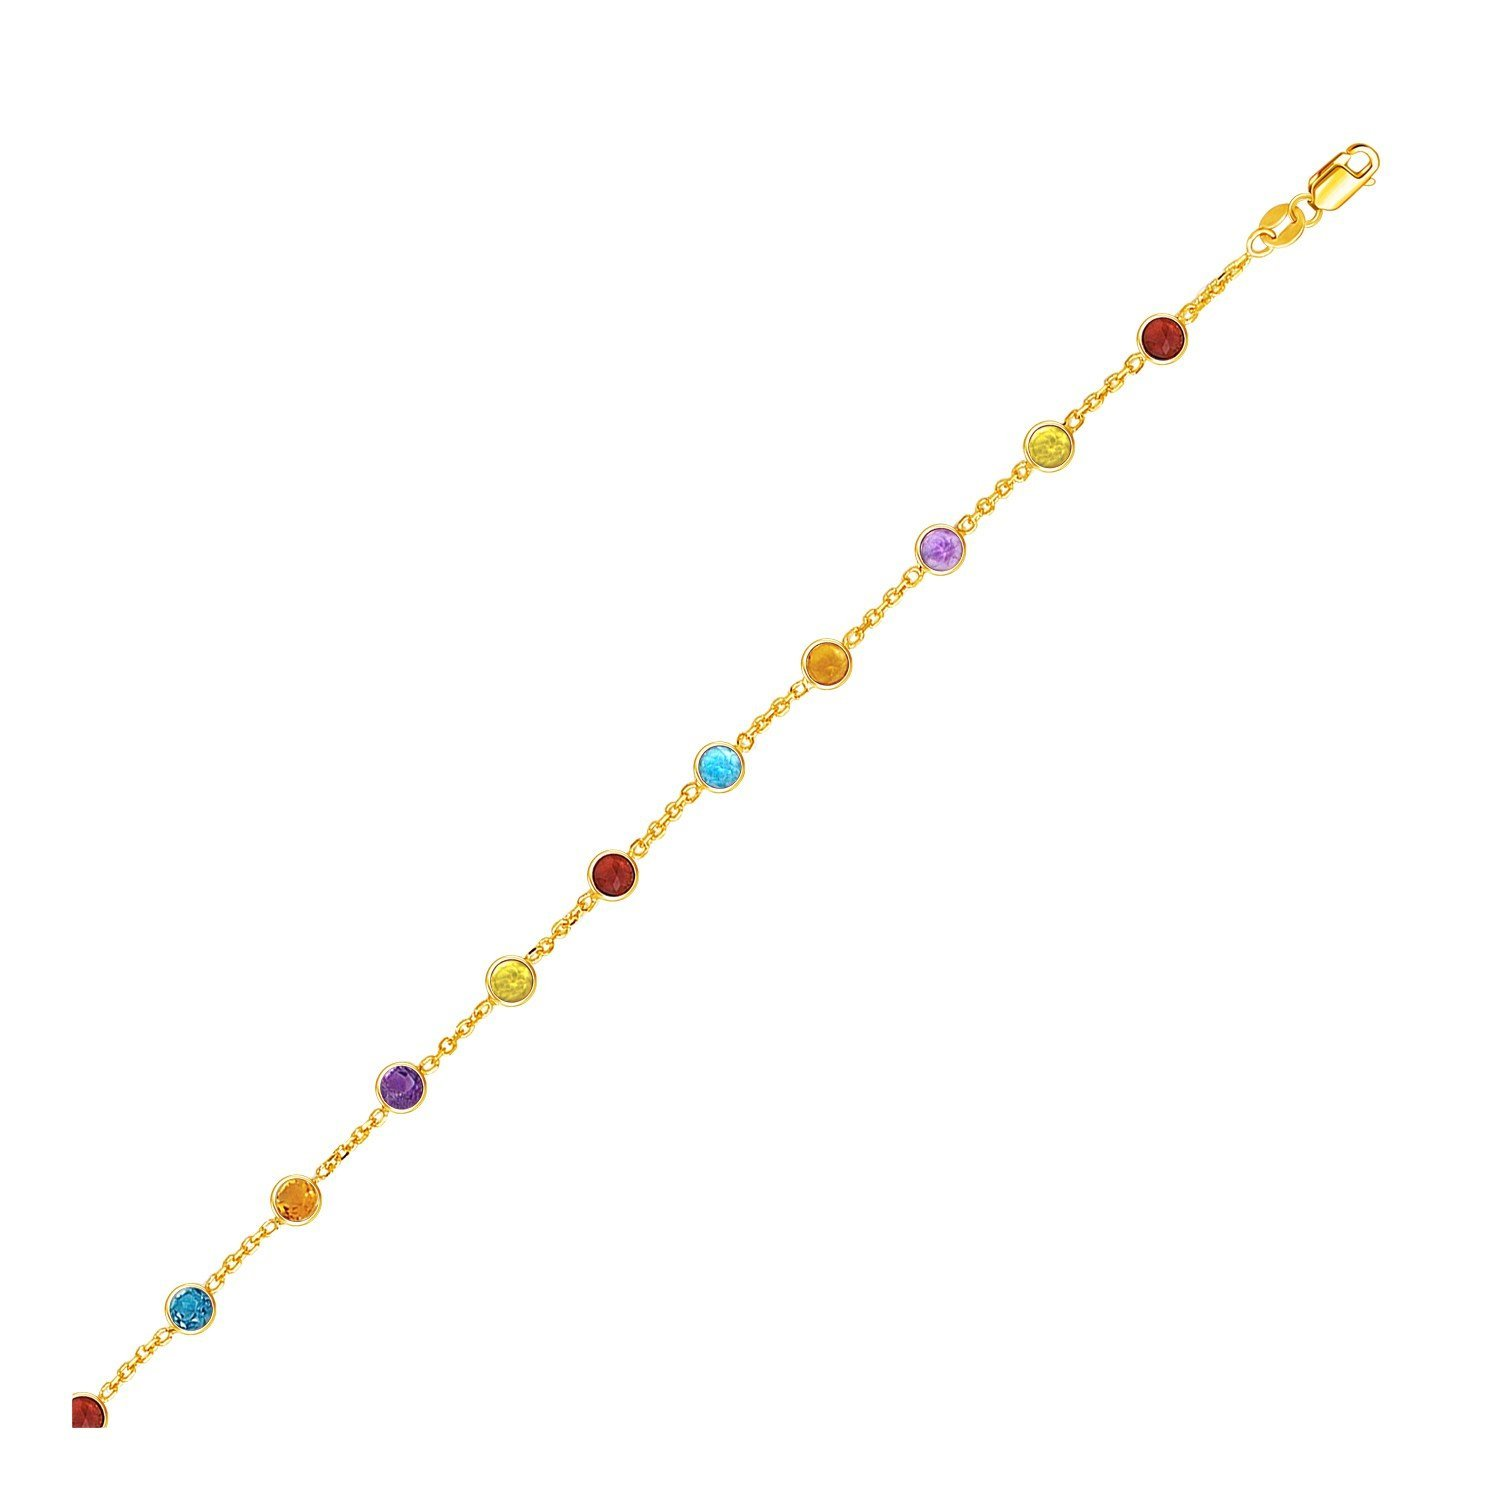 14K Yellow Gold Cable Anklet with Round Multi Tone Stations Design